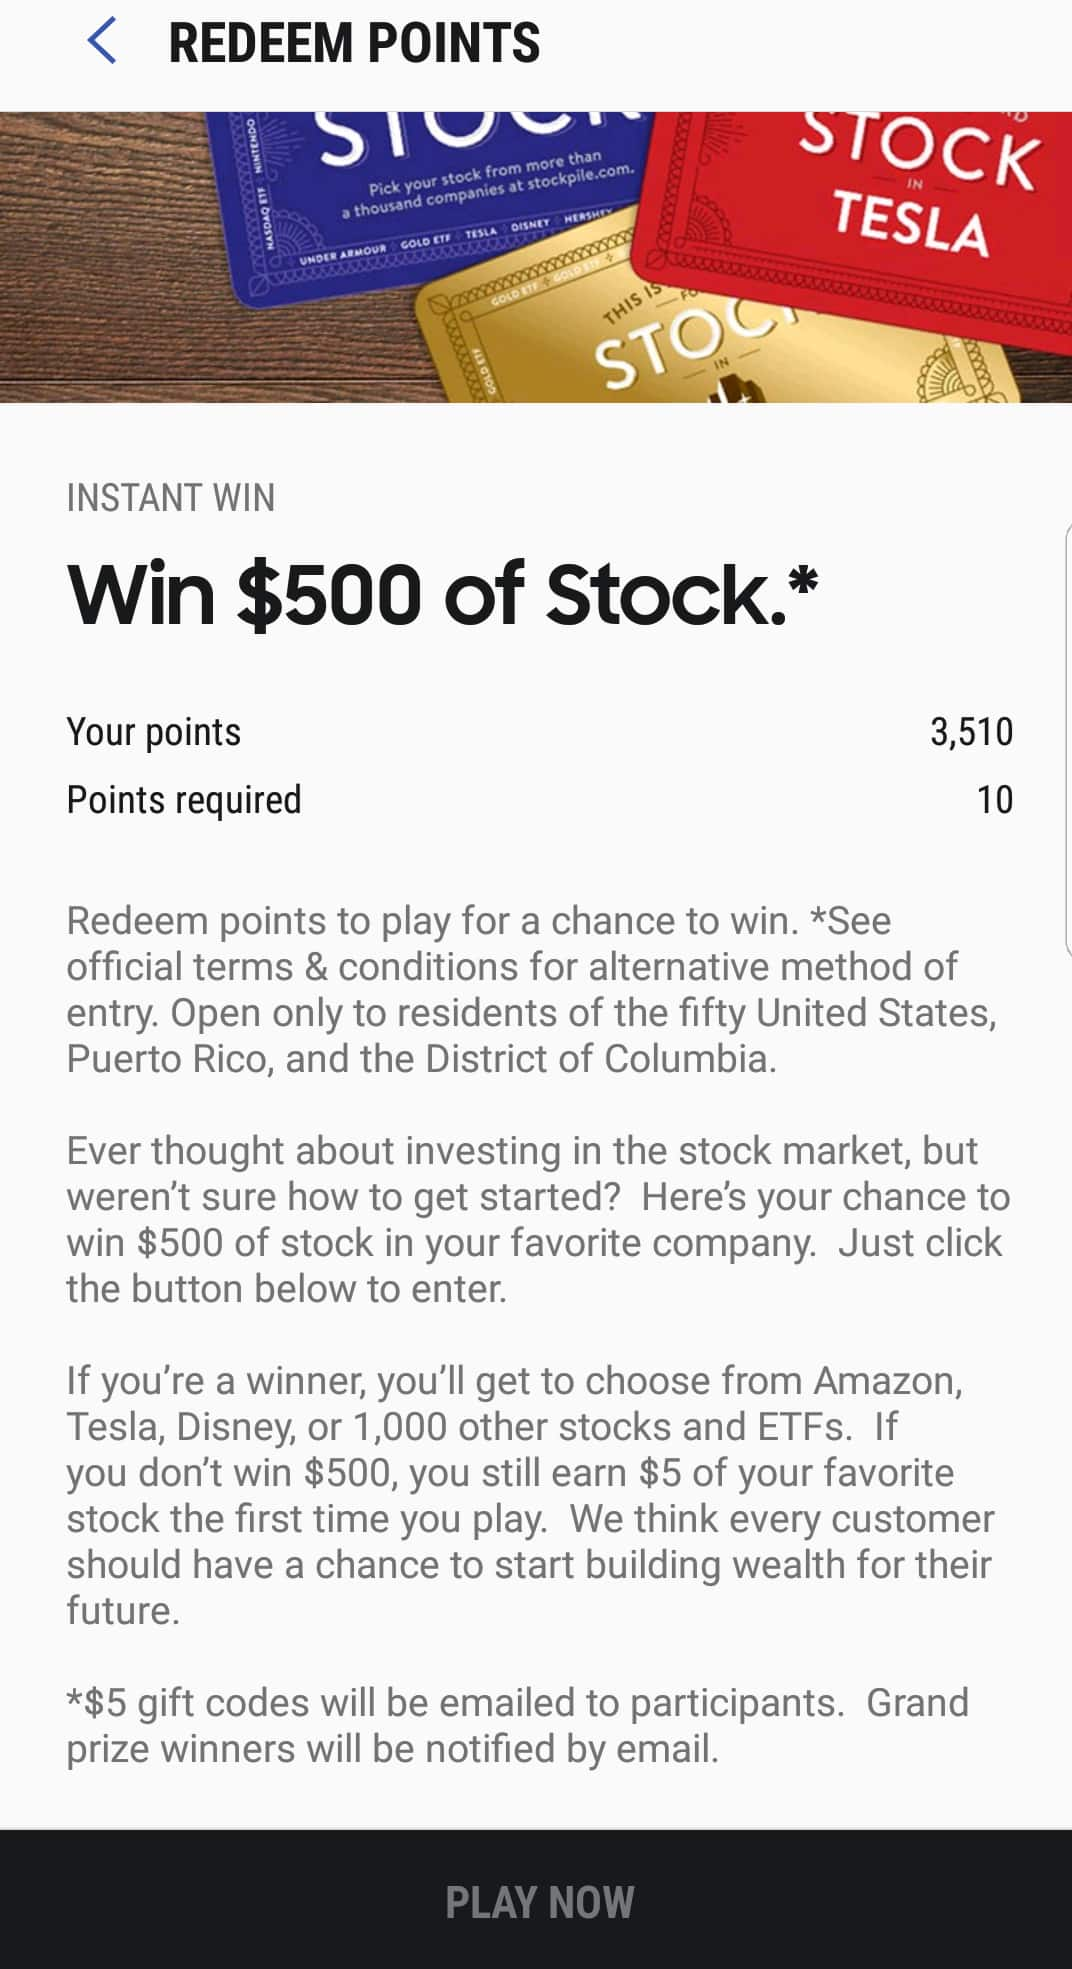 Samsung Pay  Free $5 worth of stock through Stockpile.com for 10 points. Possible YMMV